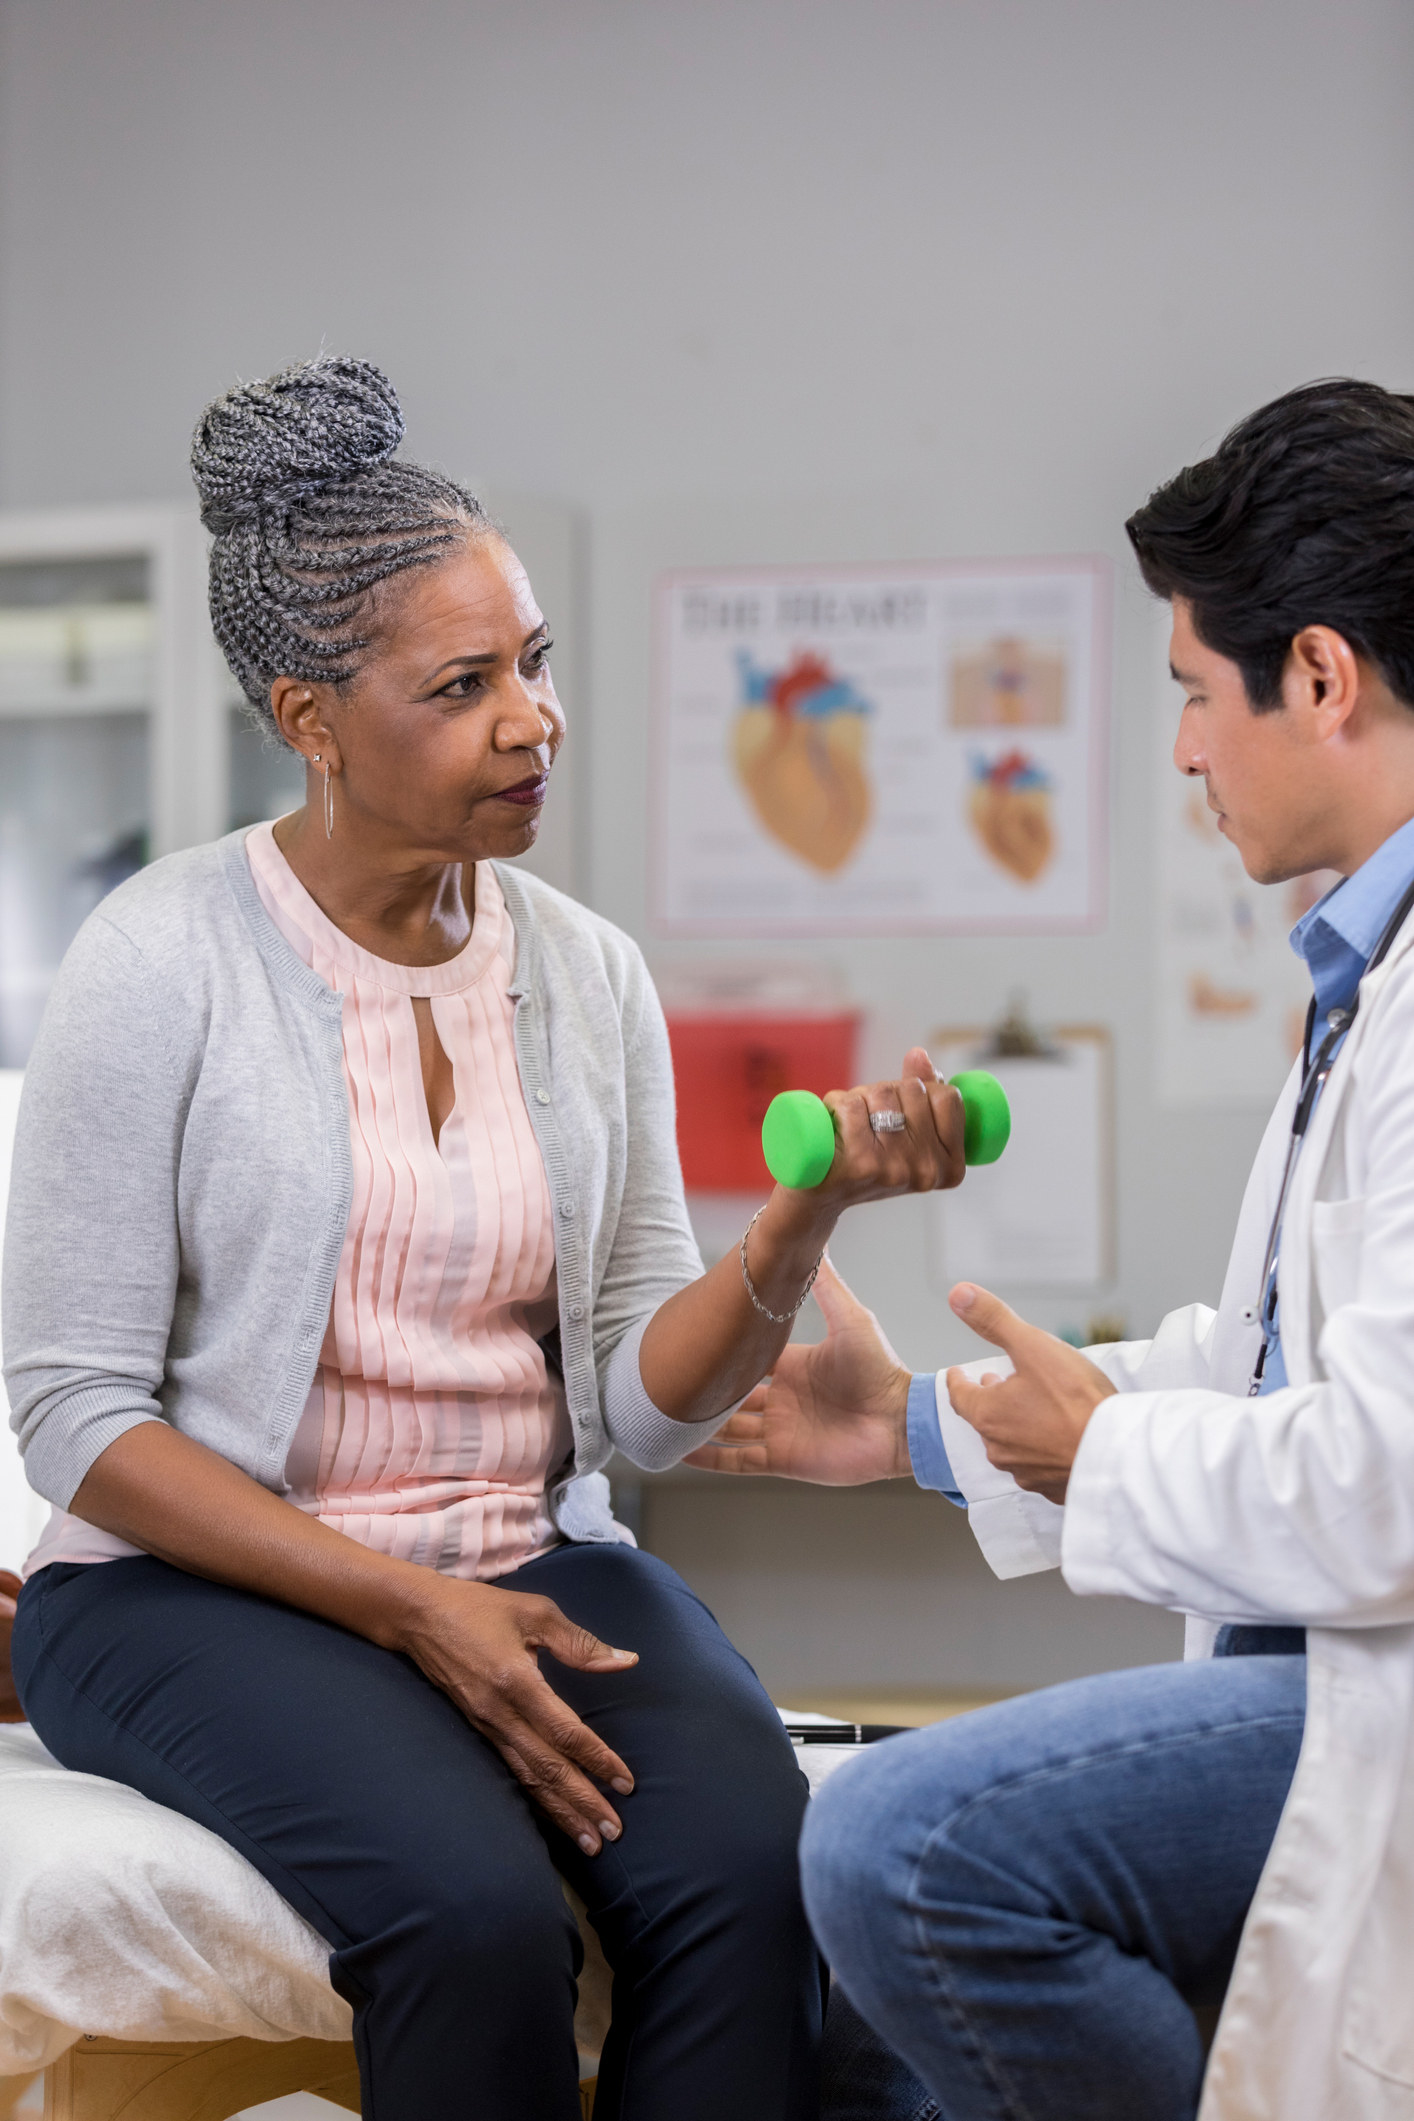 An older Black woman flexing her arm in front of a doctor